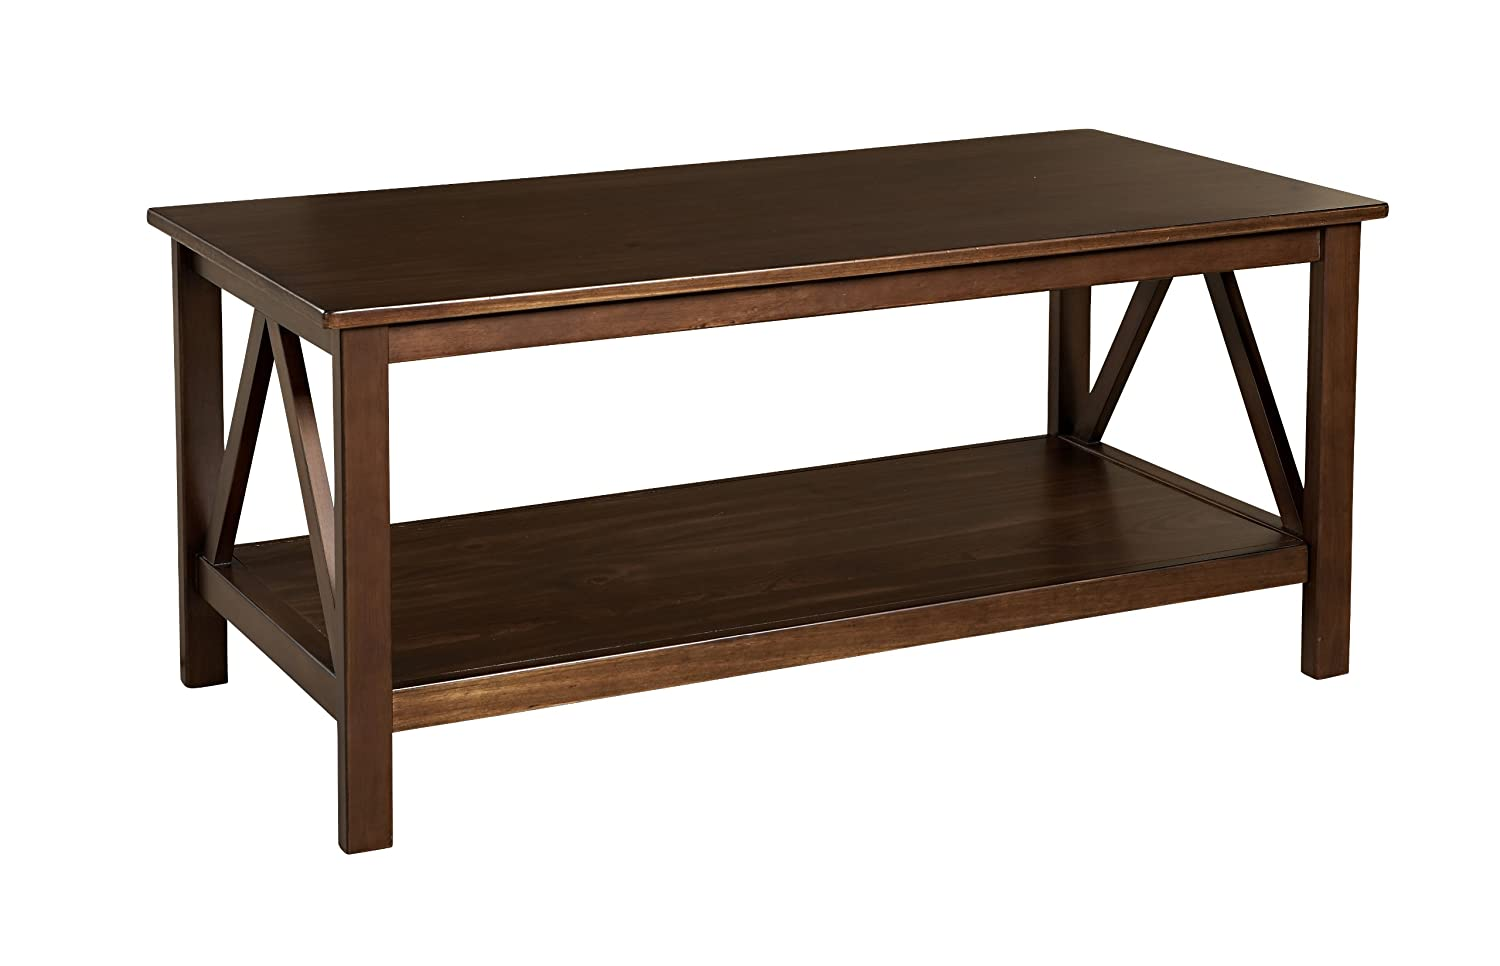 amazoncom linon home decor titian coffee table kitchen dining - Antique Wood Coffee Tables